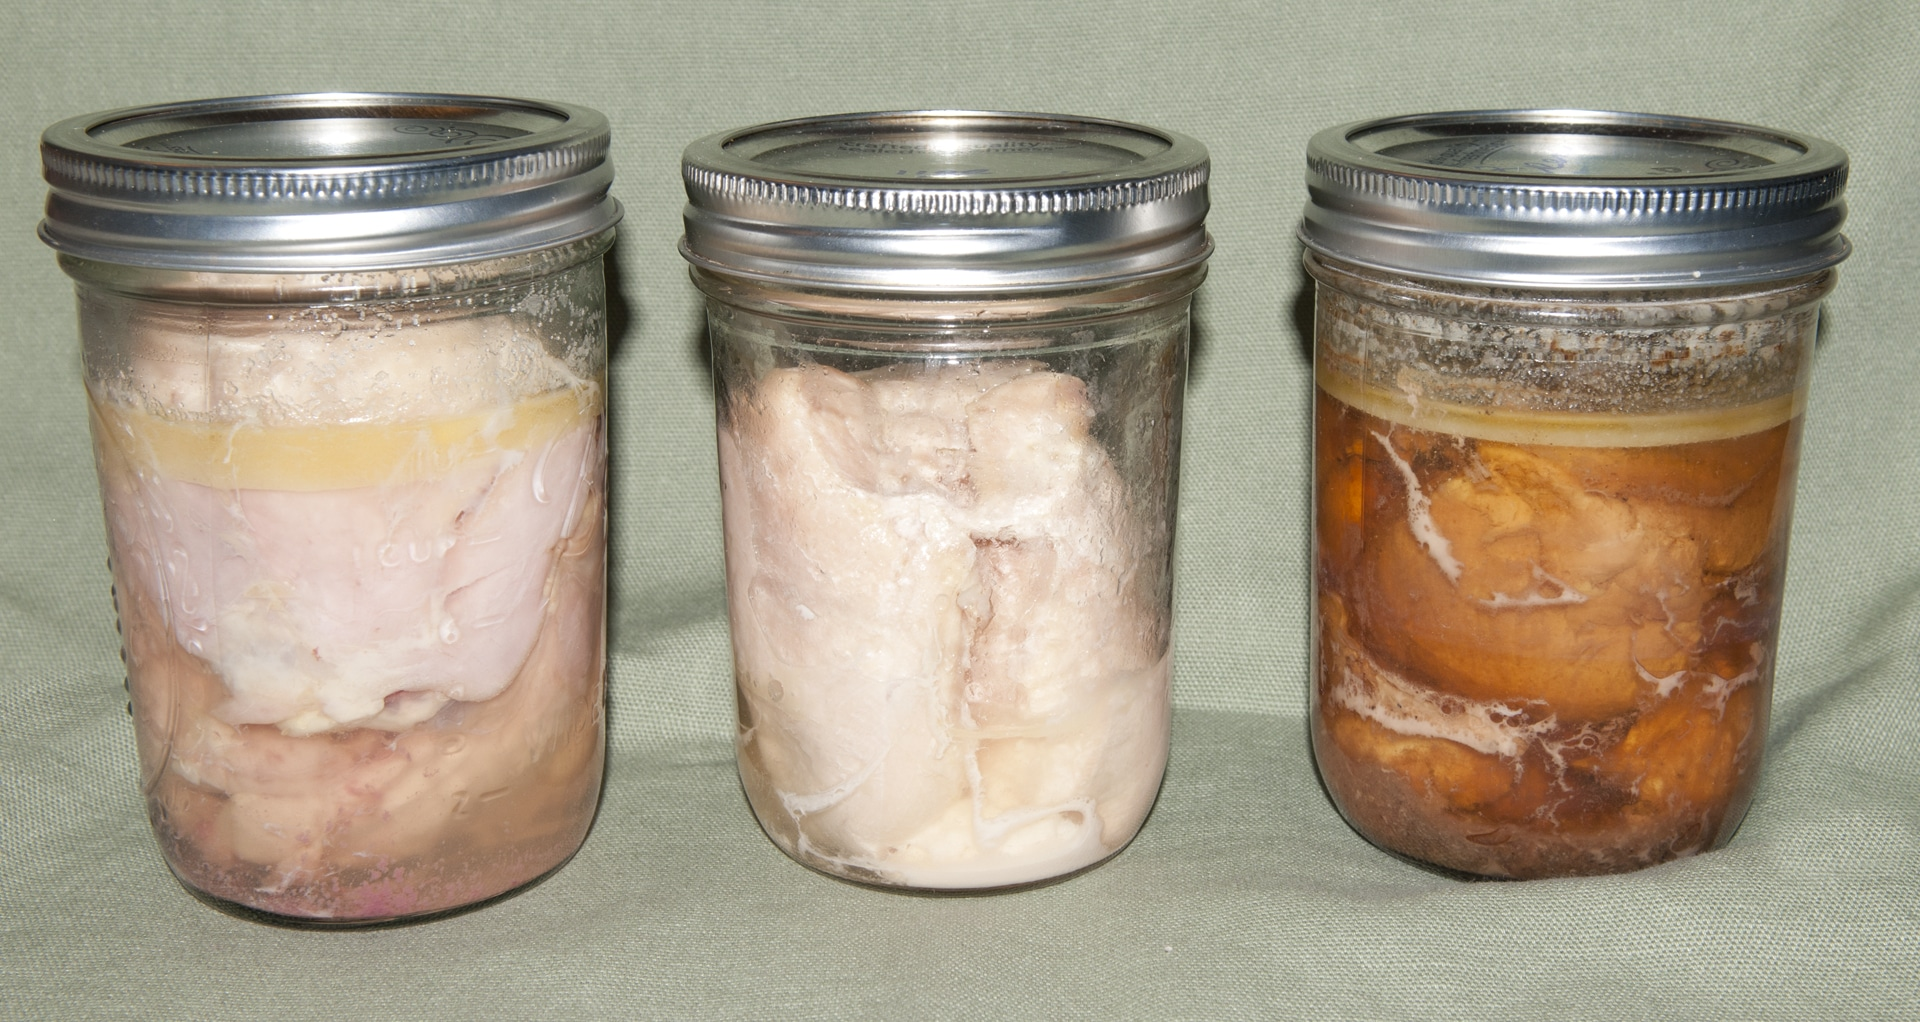 How To Prevent Botulism In Canned Food